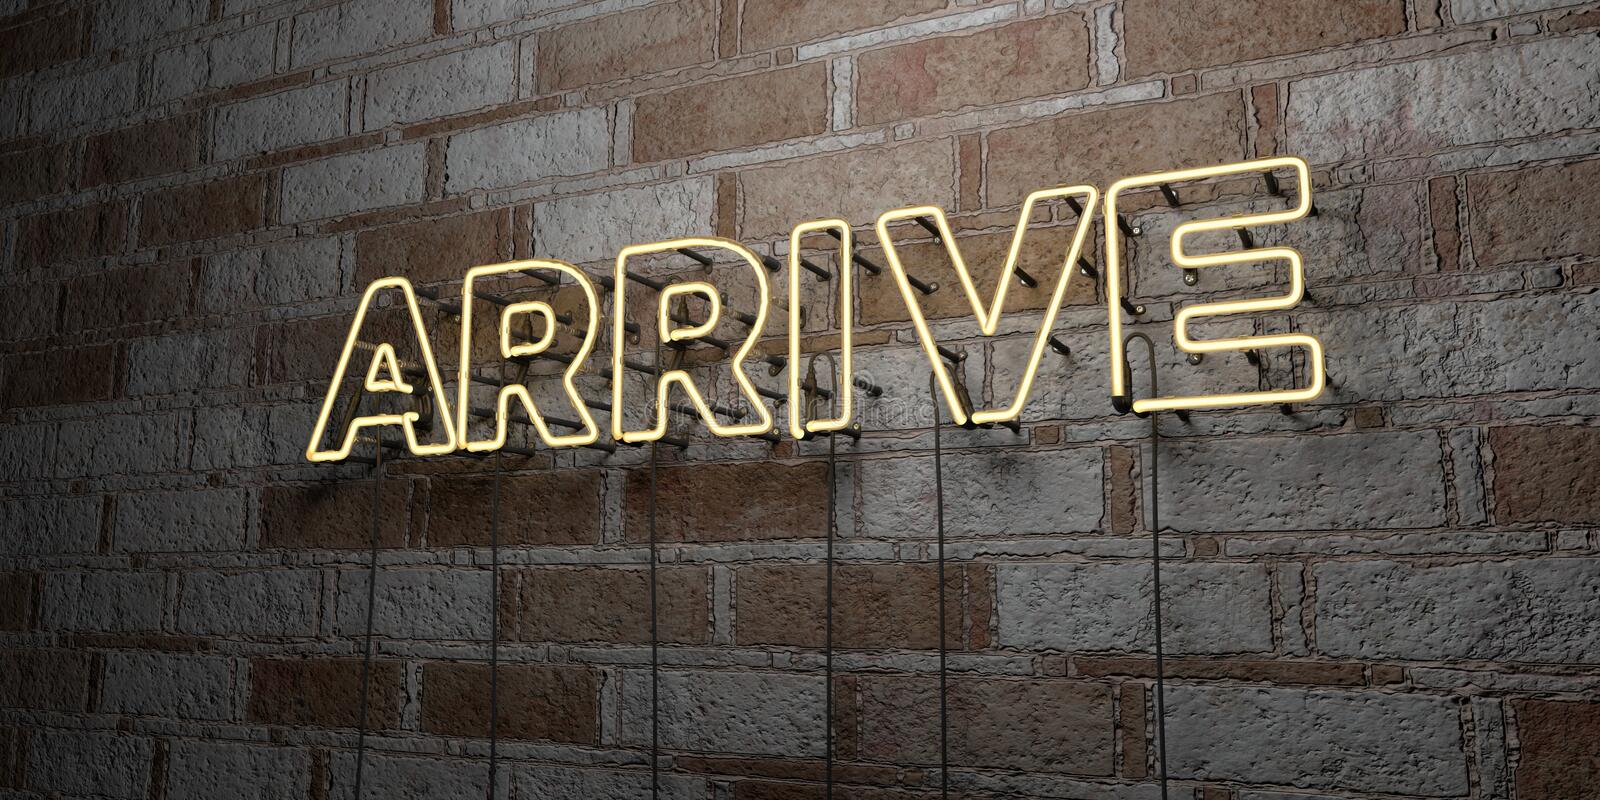 ARRIVE - Glowing Neon Sign on stonework wall - 3D rendered royalty free stock illustration. Can be used for online banner ads and direct mailers royalty free illustration